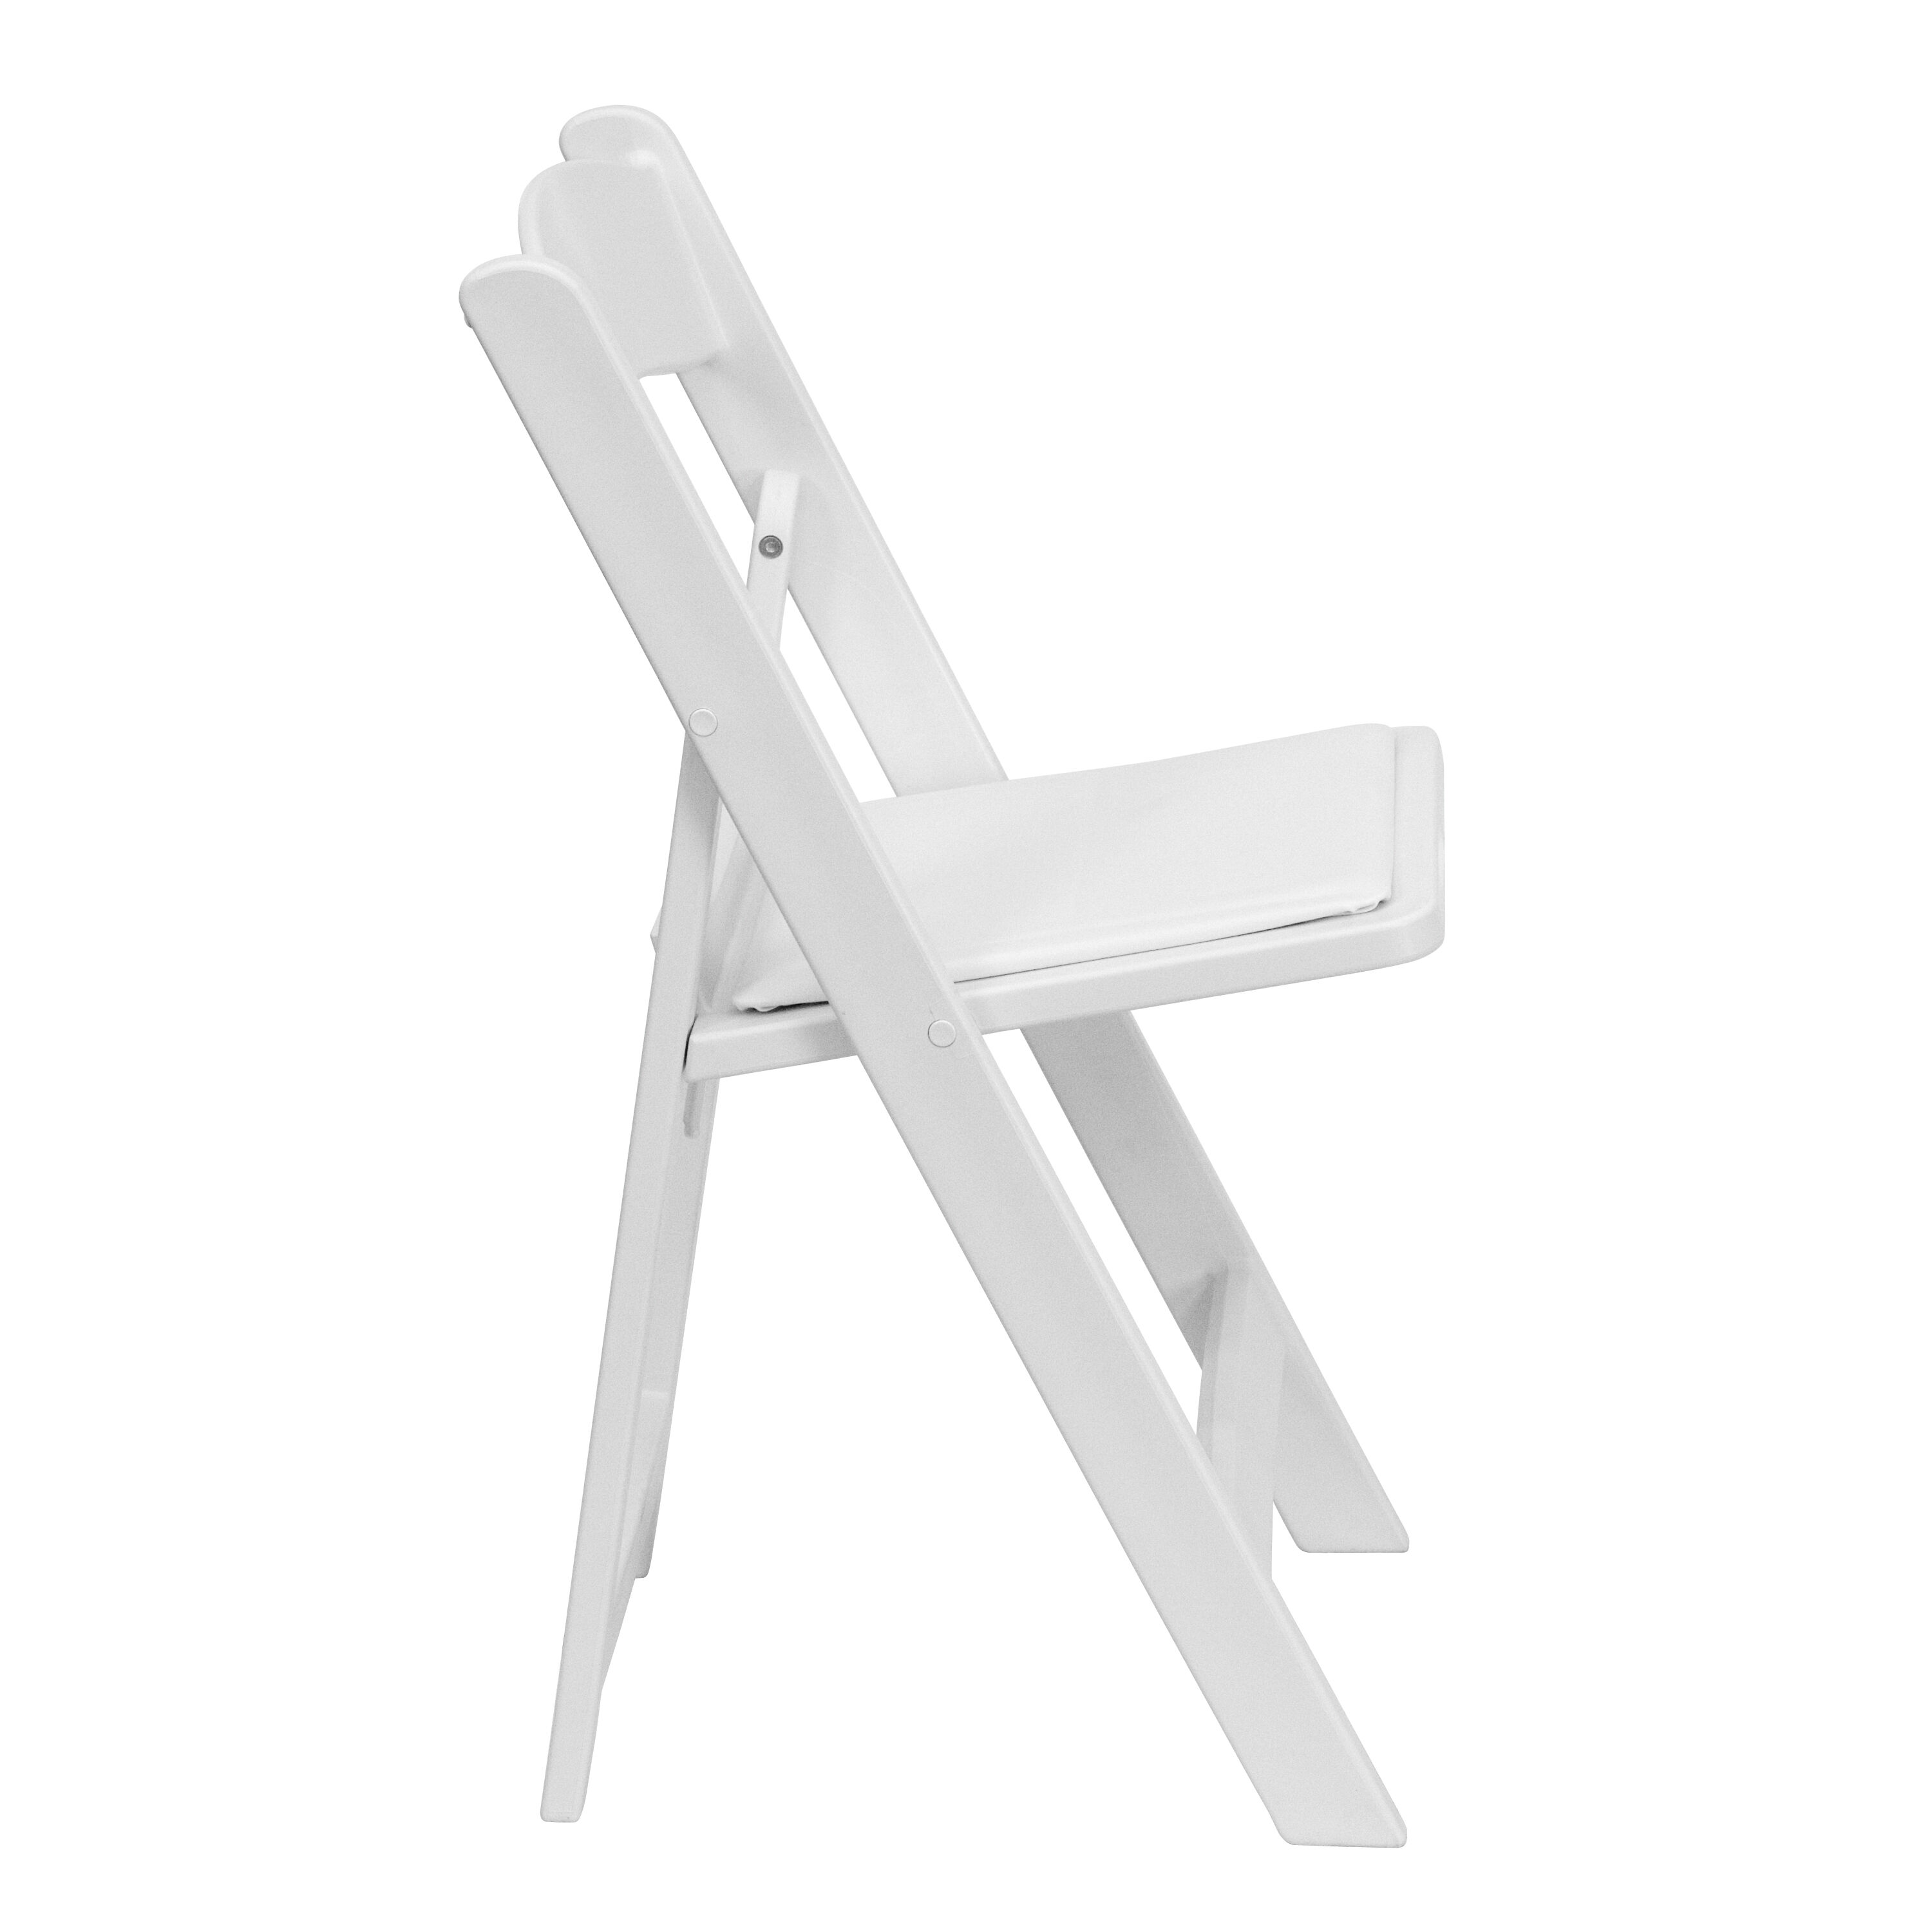 resin folding chairs for sale queen anne side cherry white chair le l 1 gg restaurantfurniture4less com capacity with vinyl padded seat